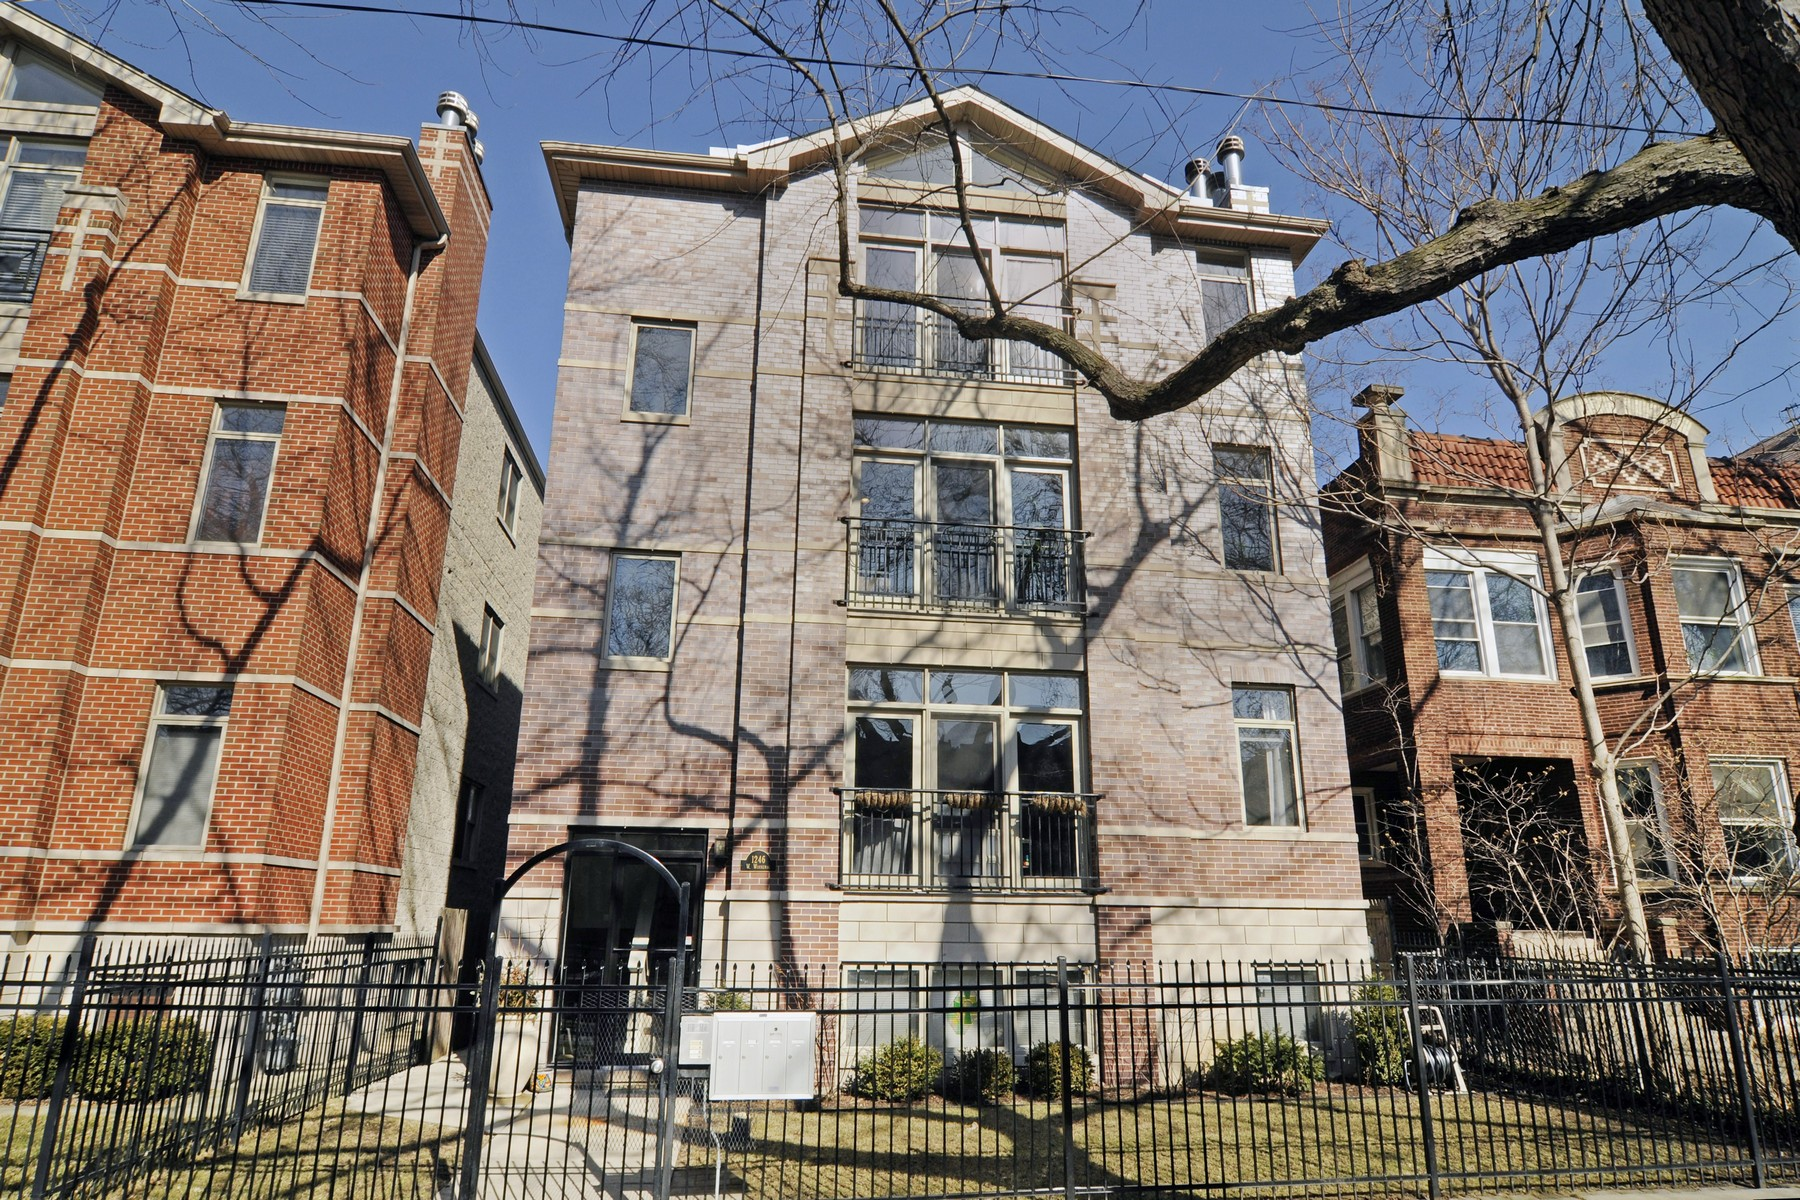 Single Family Home for Sale at Gorgeous Extra-Wide Three Bedroom Andersonville Condo 1246 W Winnemac Avenue Unit 2 Edgewater, Chicago, Illinois, 60640 United States